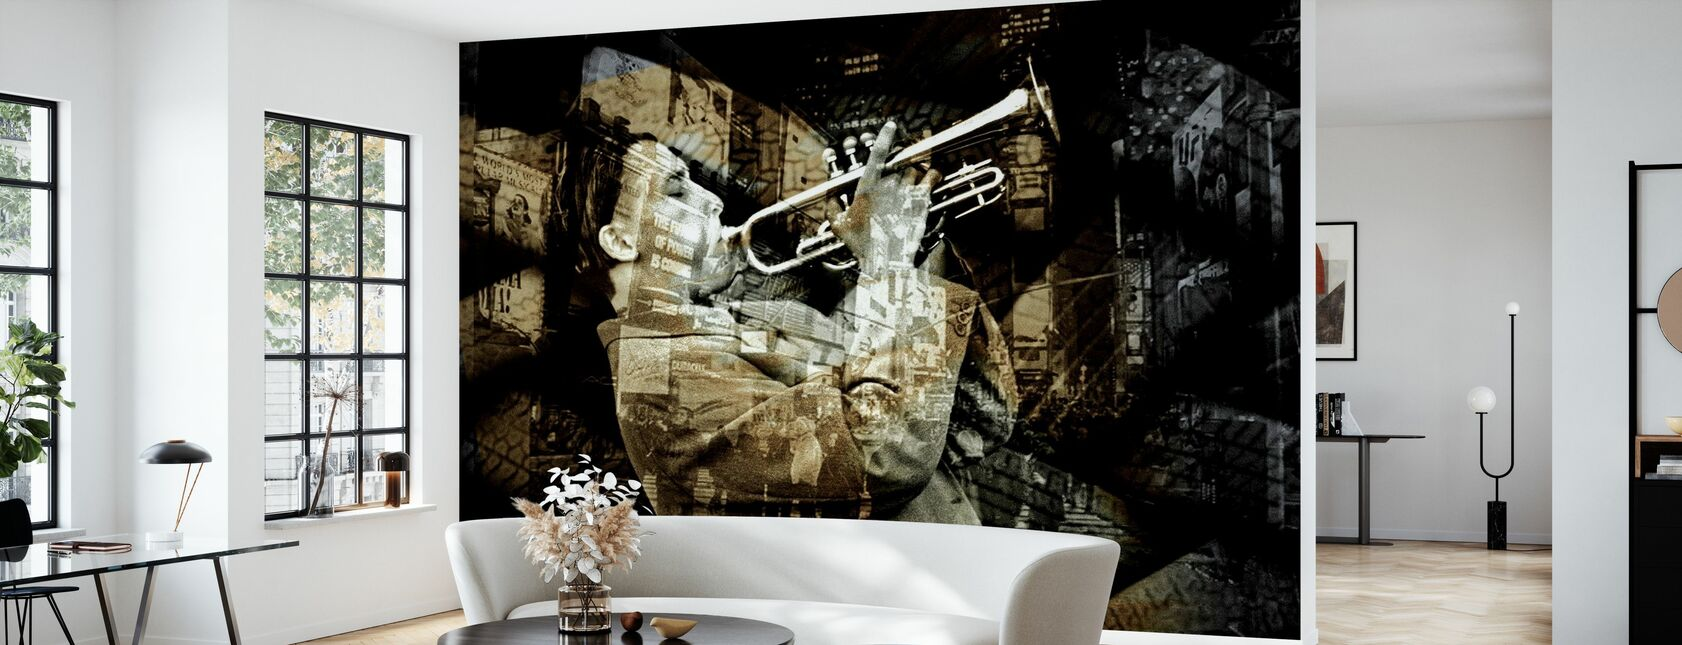 All The Jazz - Wallpaper - Living Room